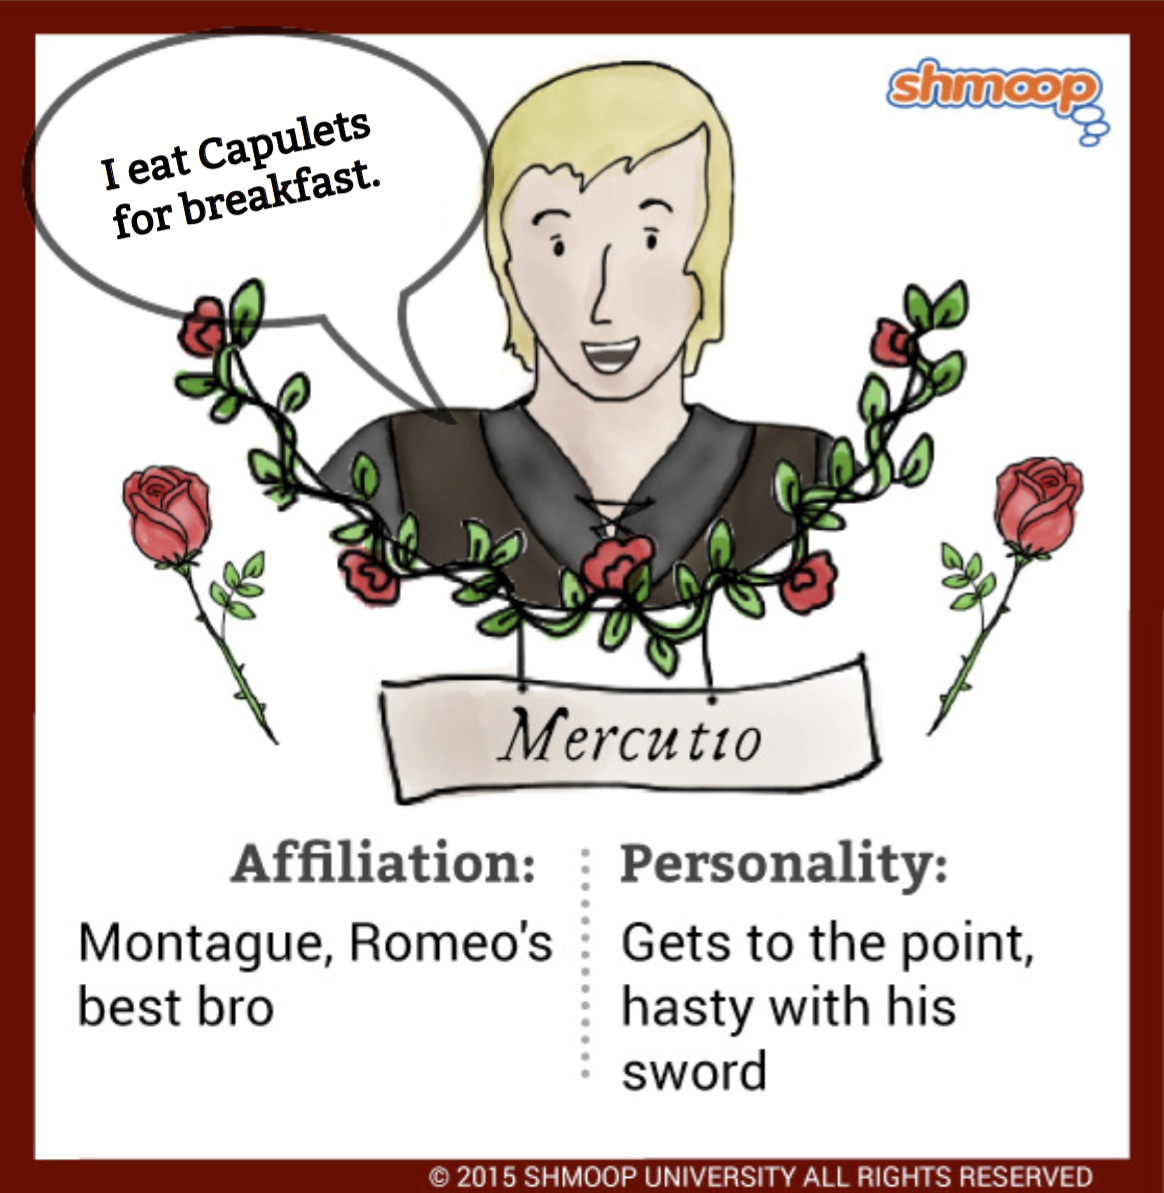 mercutio in romeo and juliet chart mercutio view able image